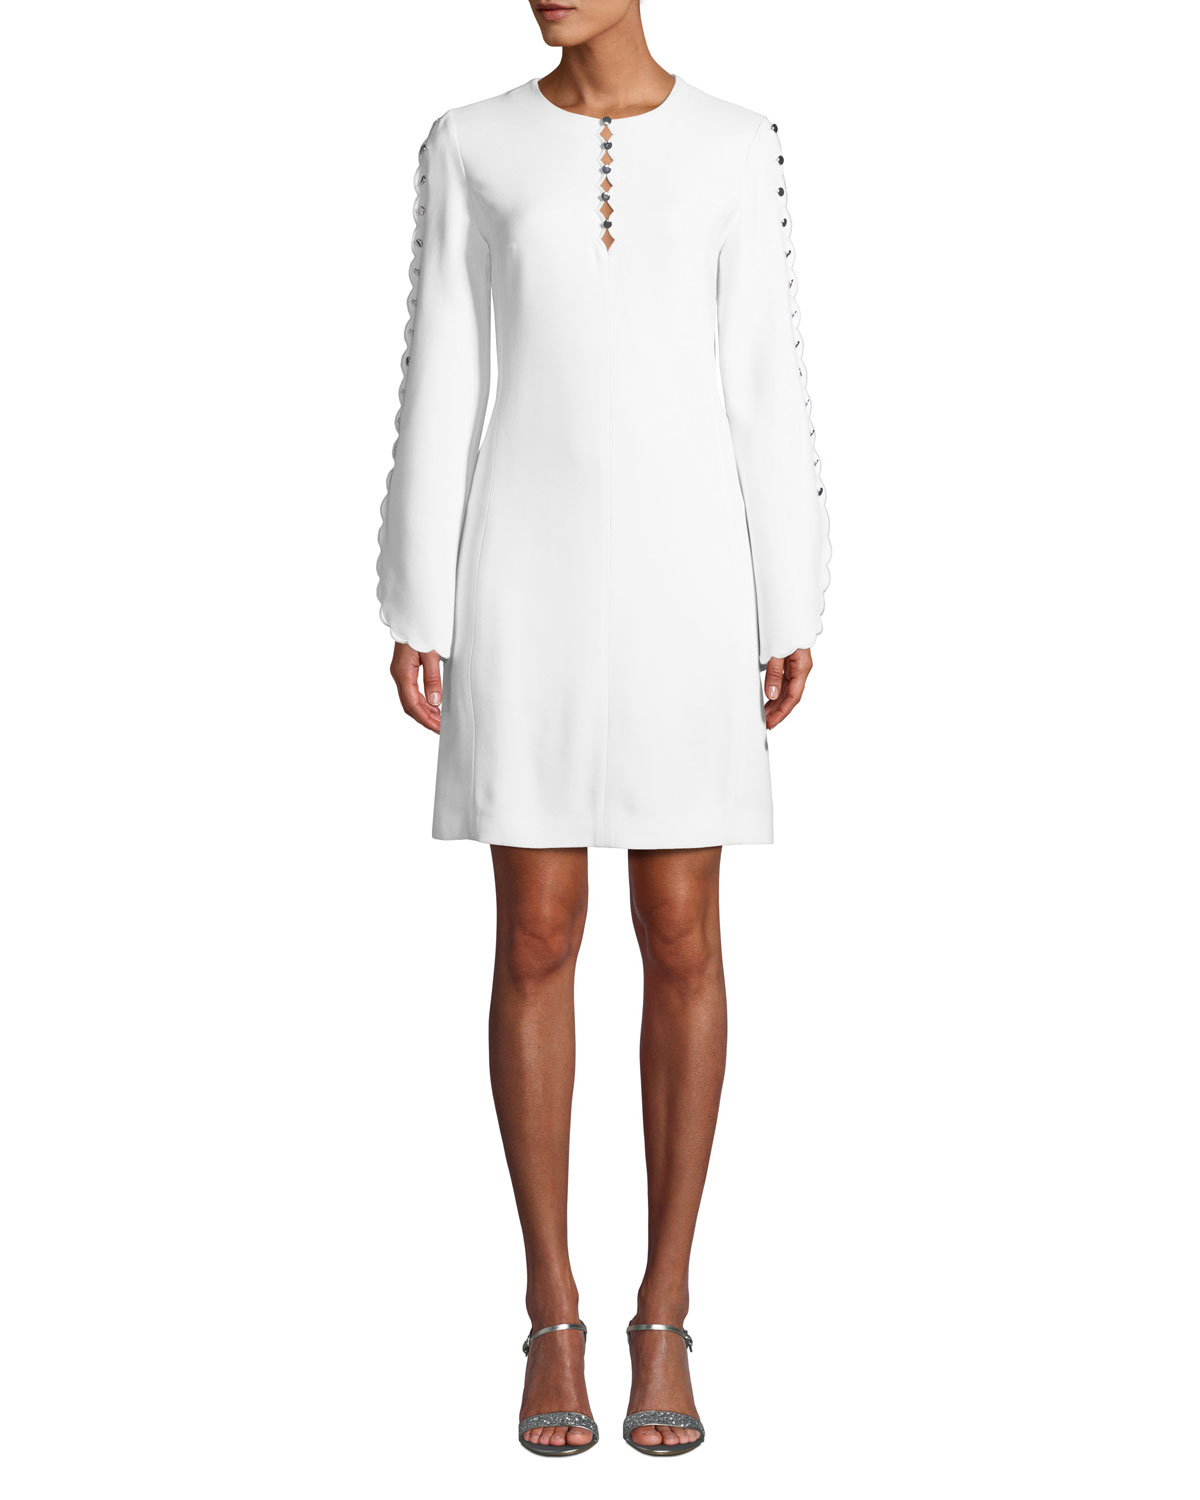 ec7f775a218 Michael Kors Collection Scalloped-Sleeve Crepe Sable Shift Dress ...